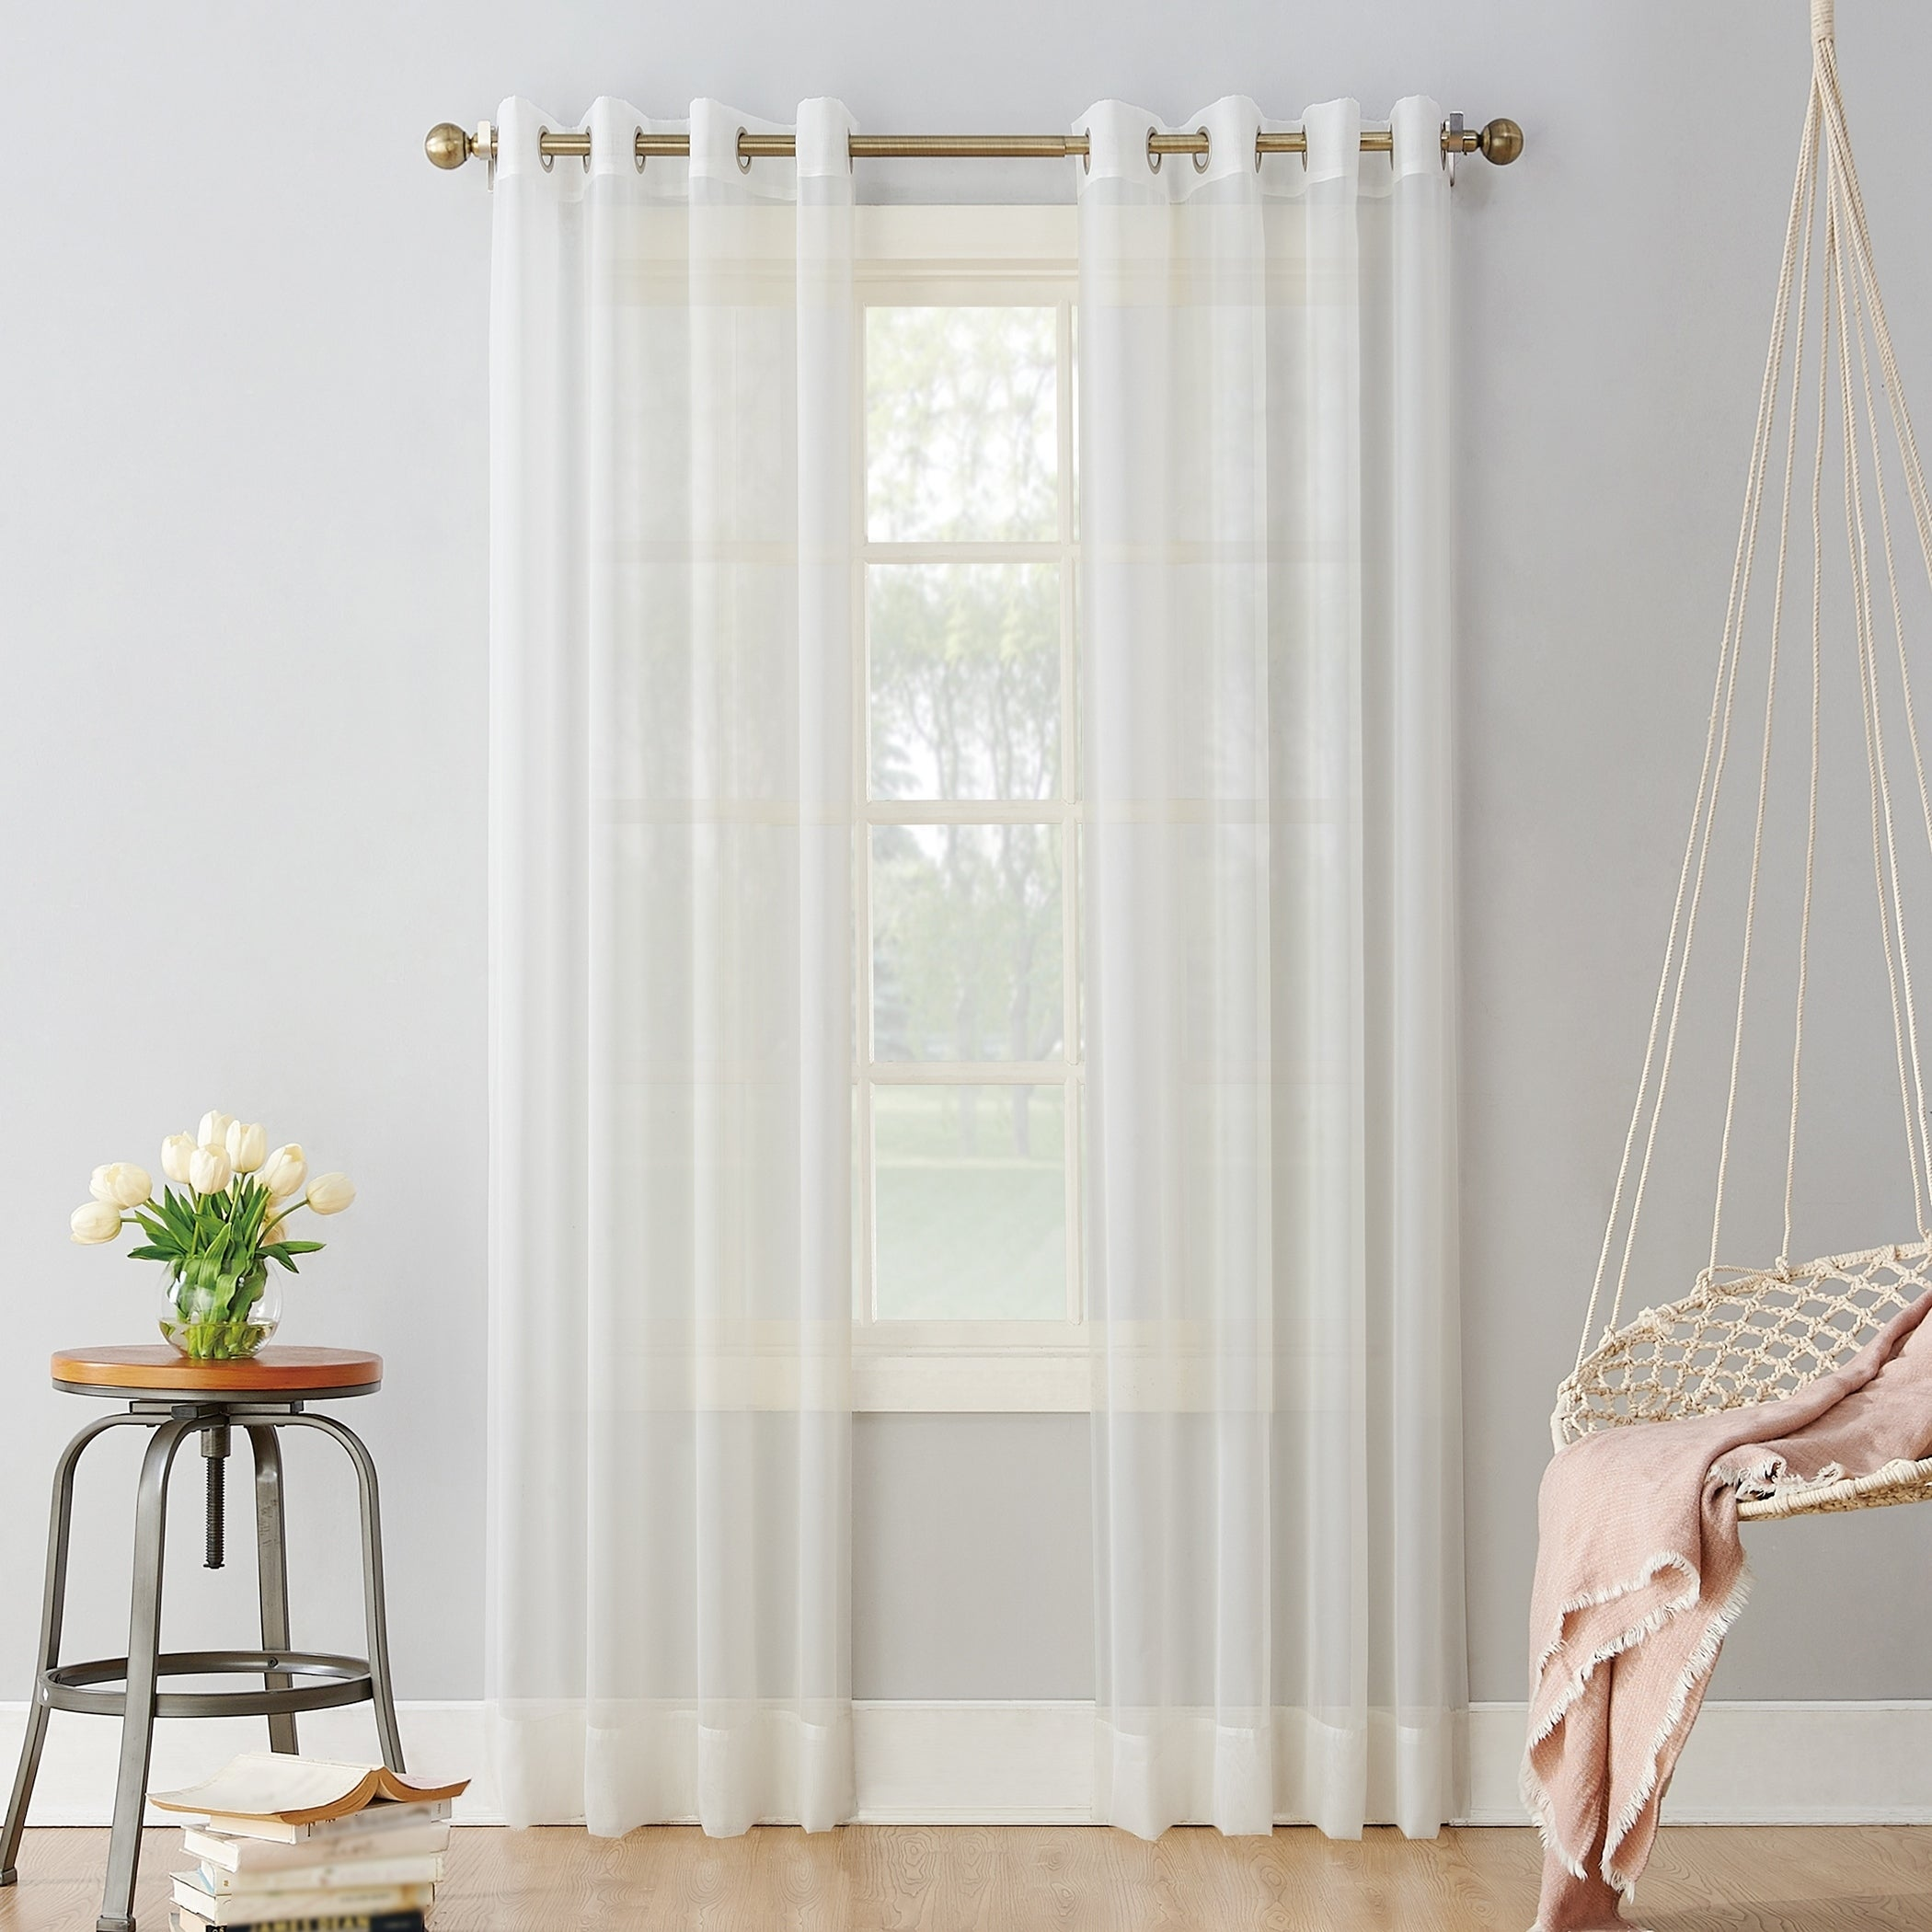 pinterest pin voile window blind curtain roman curtains ideas with sheer